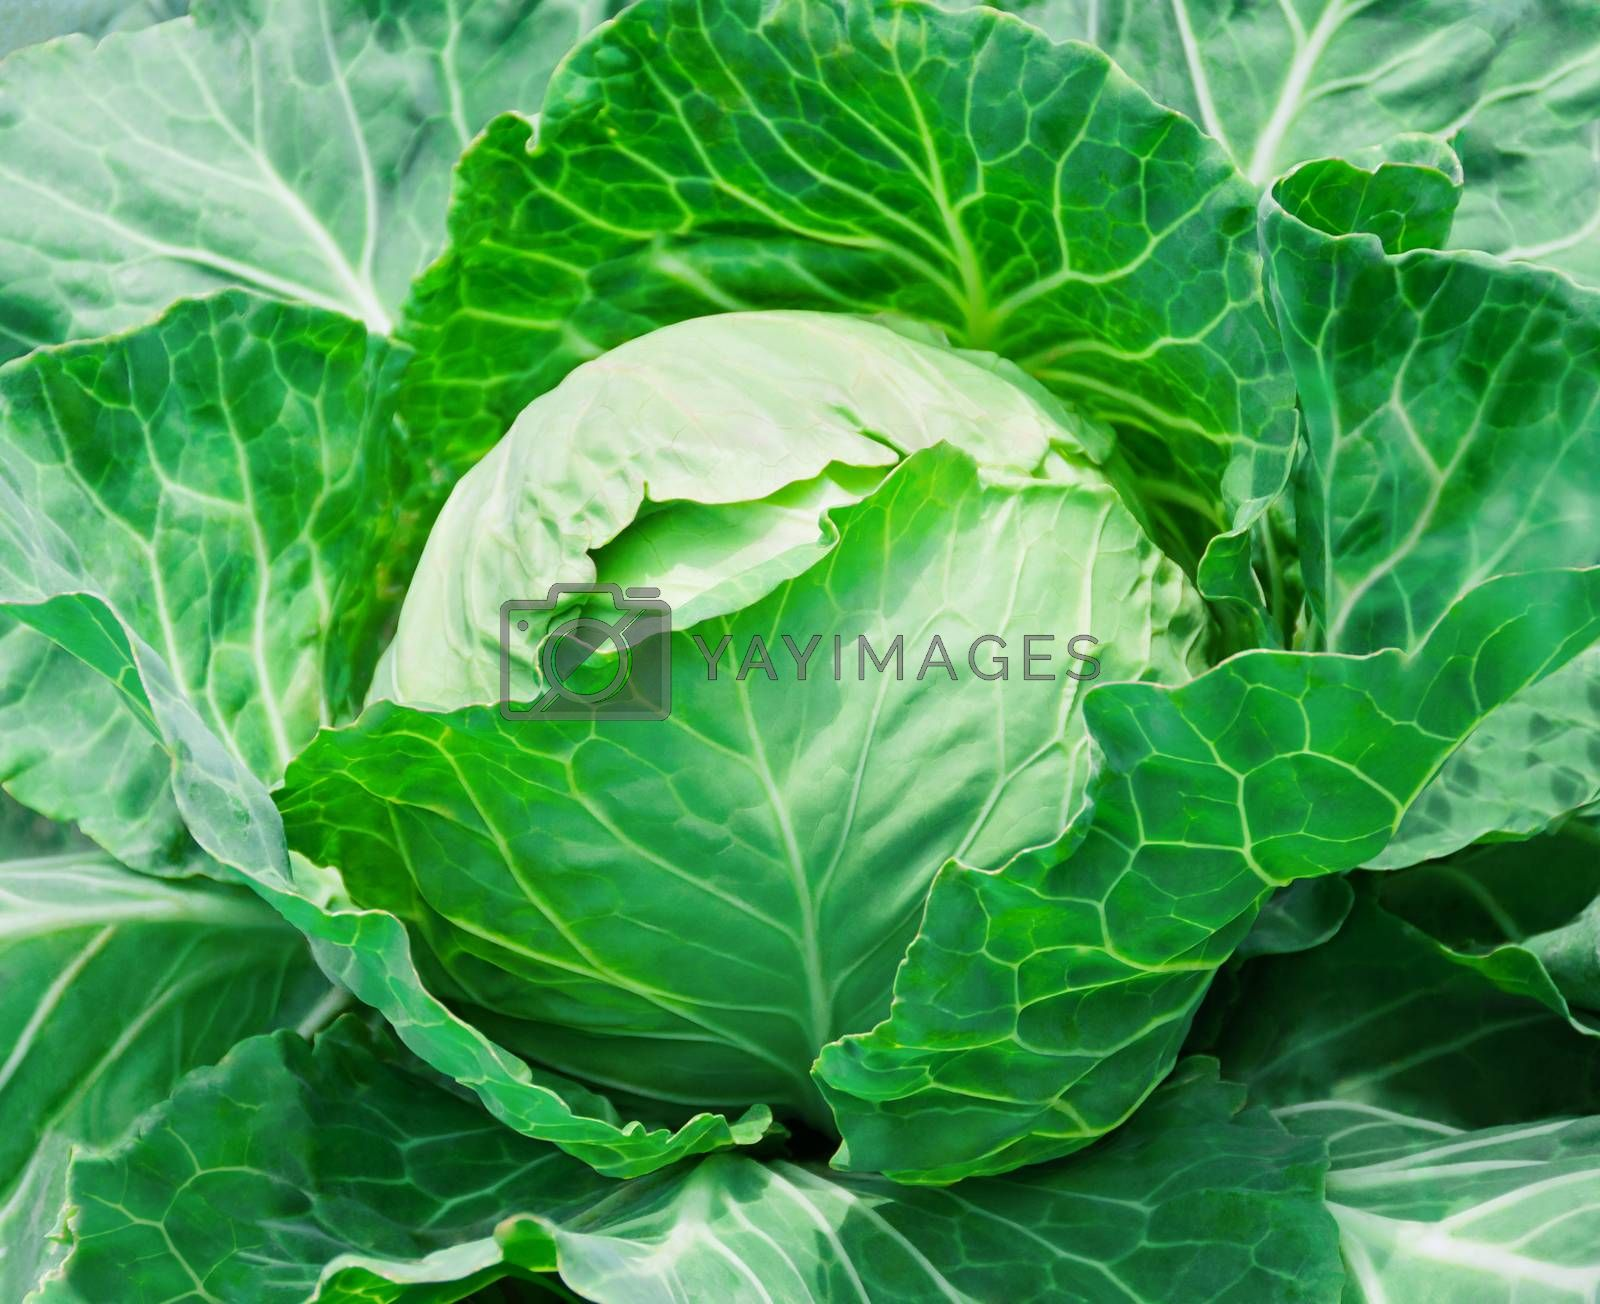 Royalty free image of close-up of fresh cabbage in the vegetable garden  by zeffss